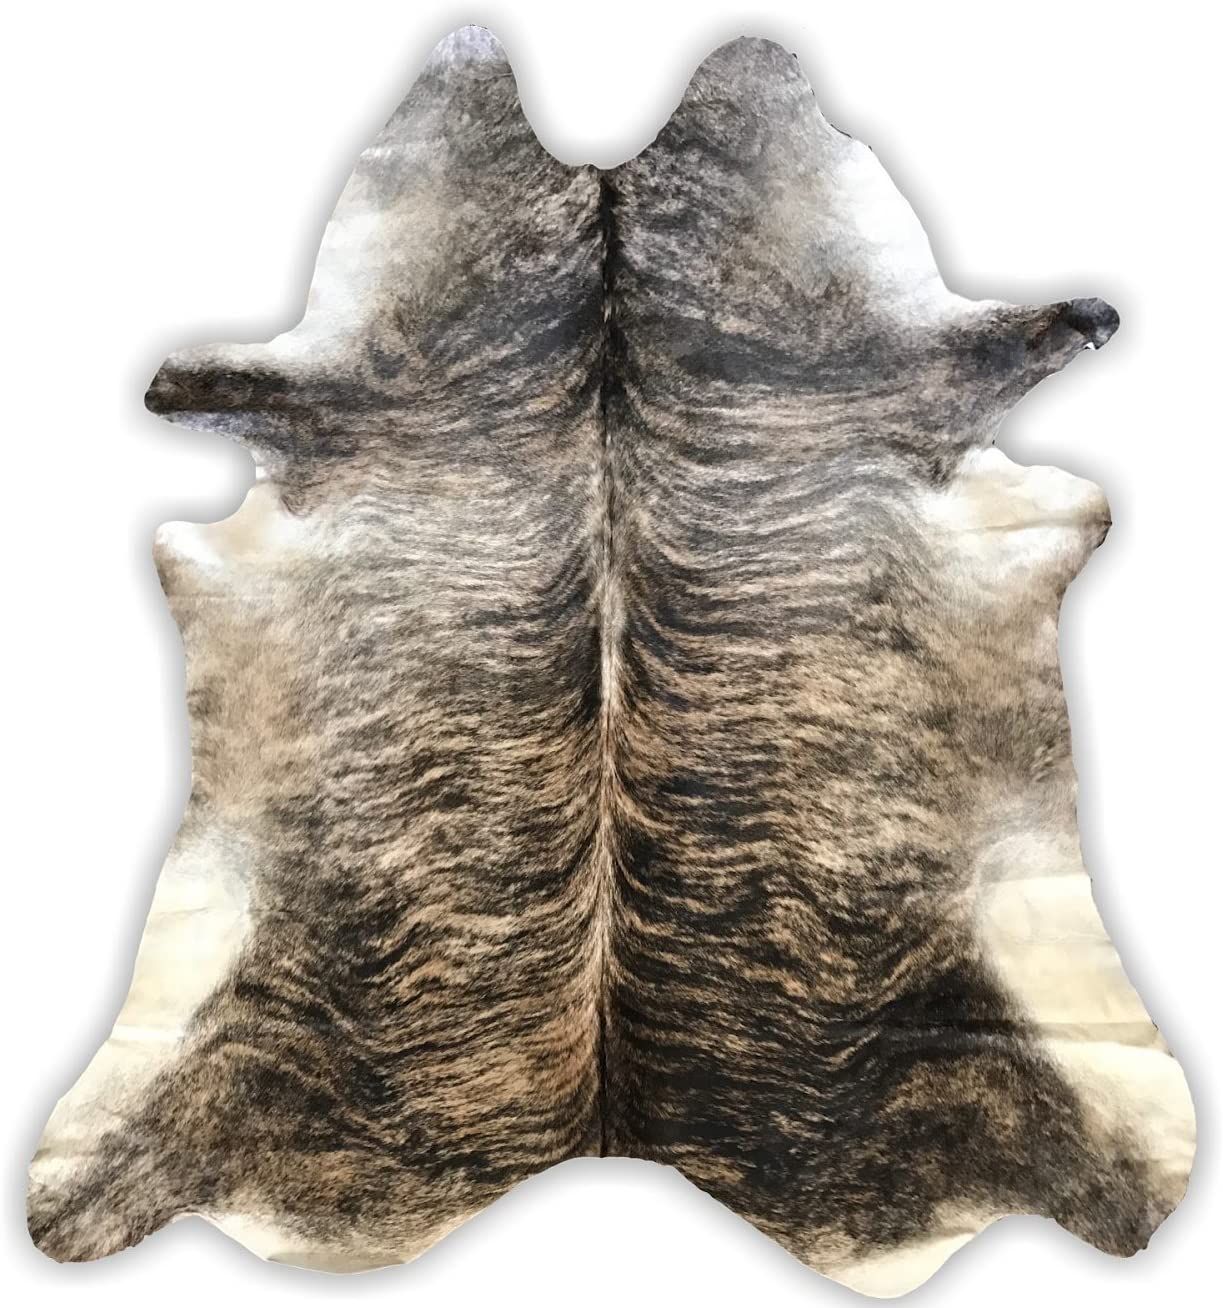 Light Brindle Cowhide Rug Cowhide Area Rugs by Crown Home Innovations 100 Natural Leather Rugs Light Brindle 6 x7